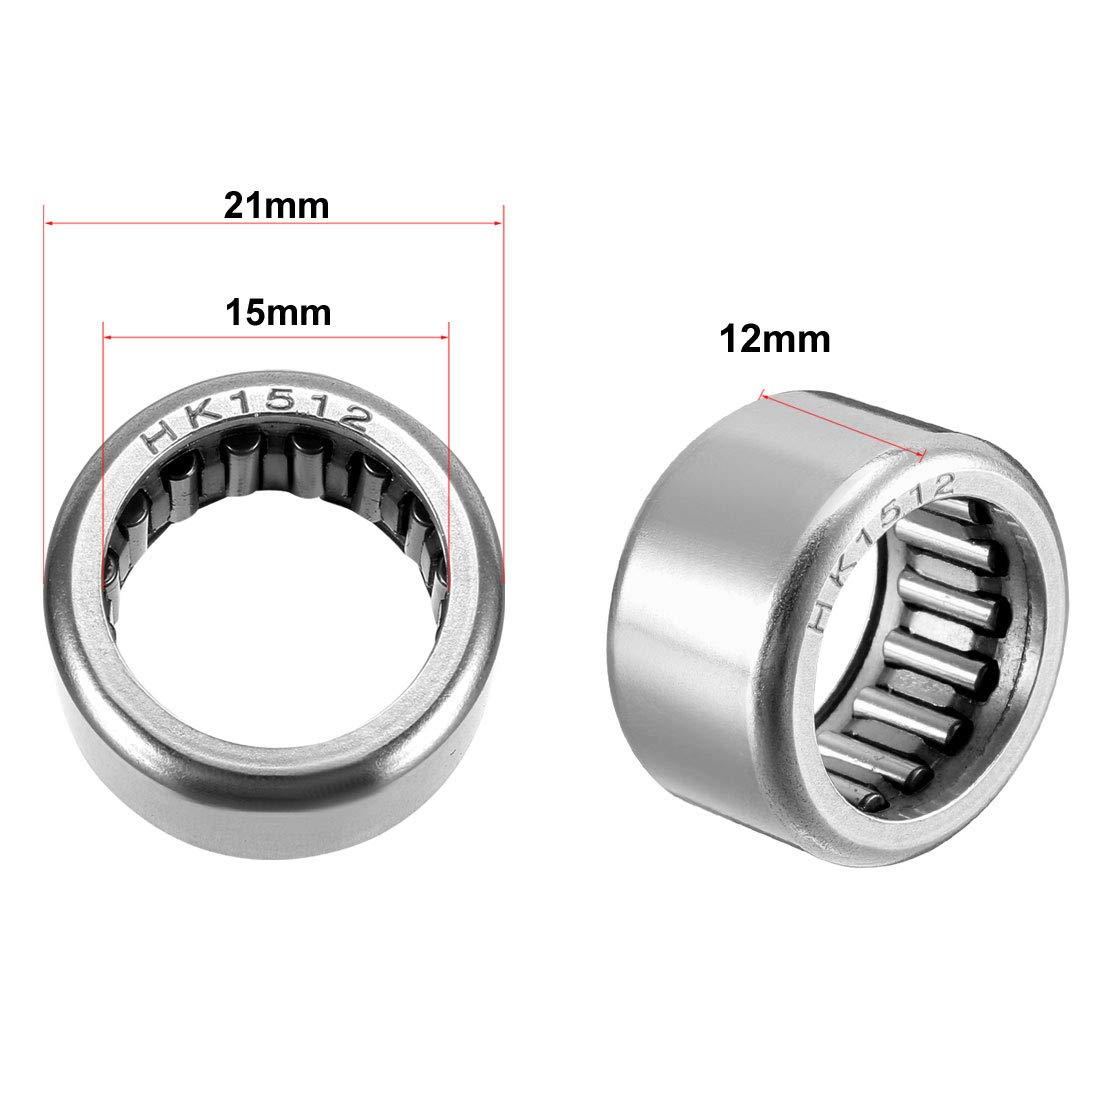 uxcell HK0306 Drawn Cup Needle Roller Bearings 6mm Width Open End 6.5mm OD 3mm Bore Dia Pack of 1